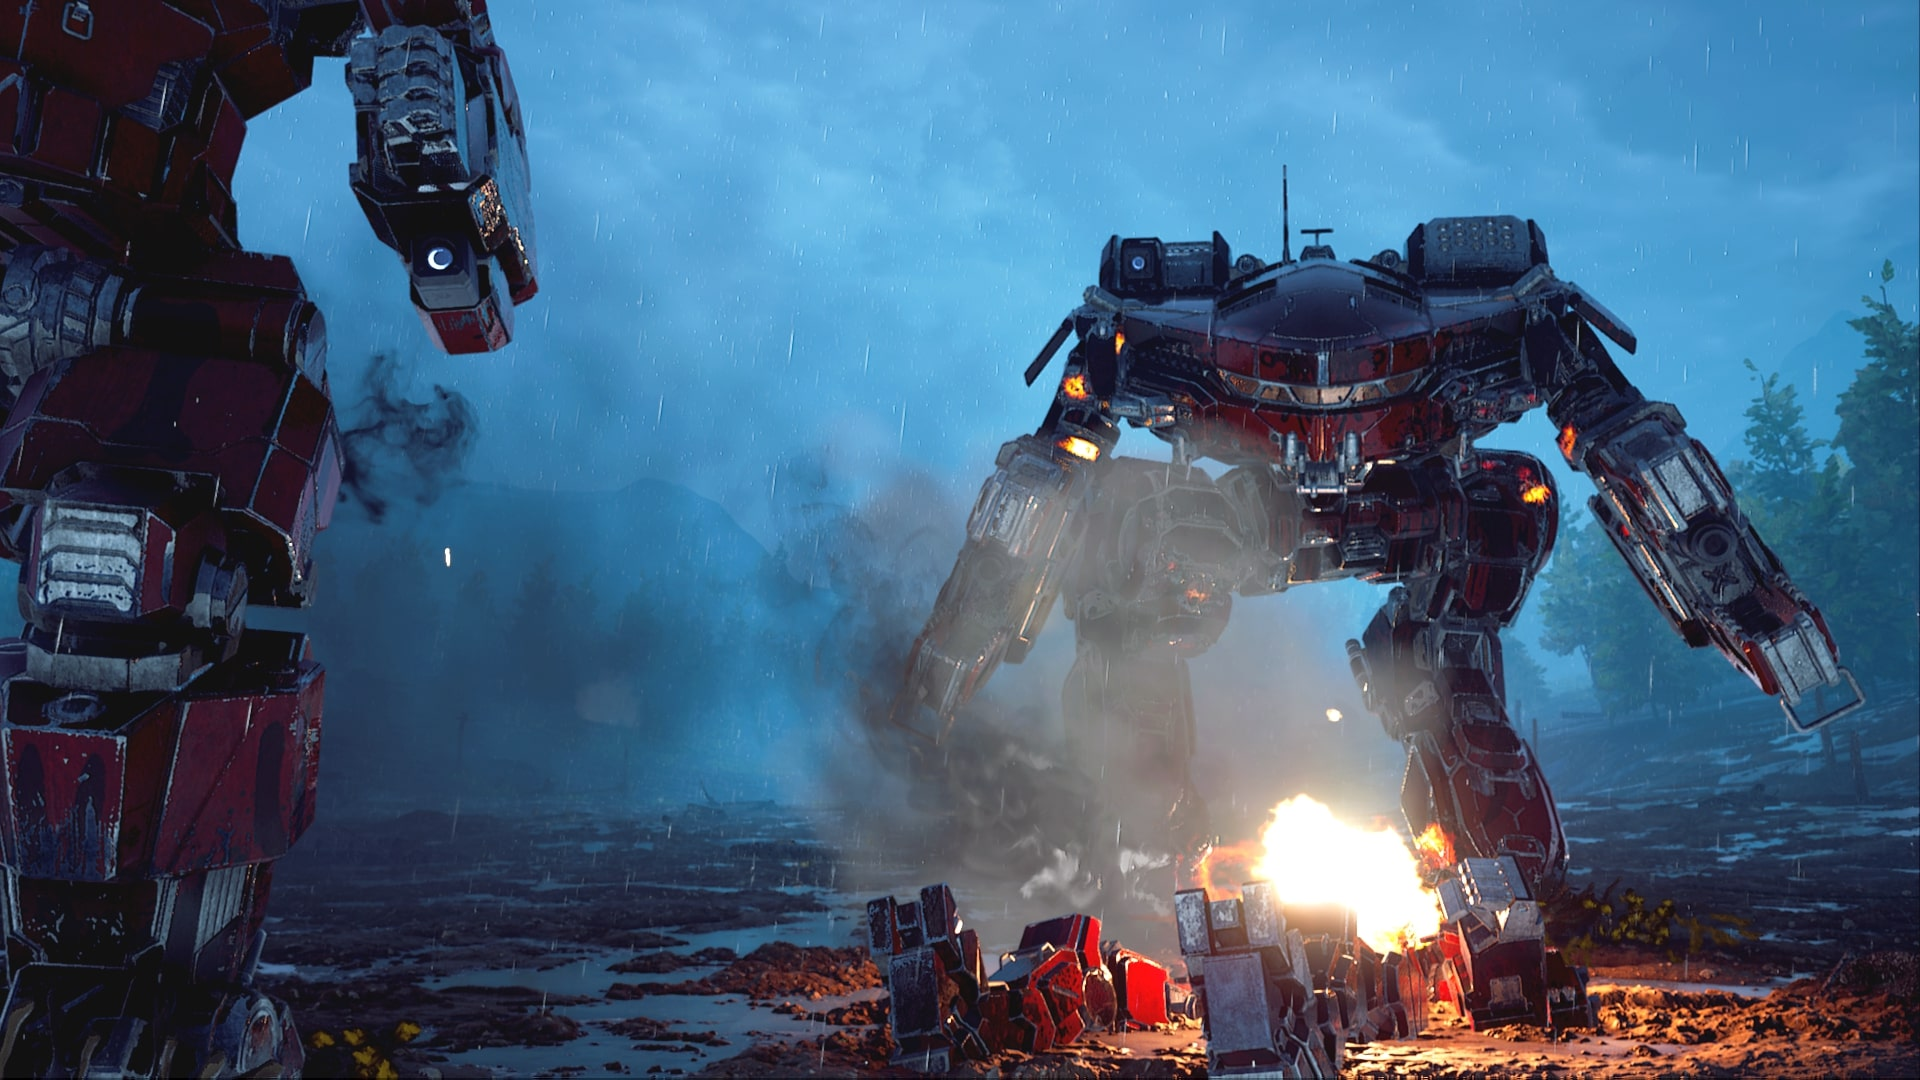 MechWarrior 5 Is Building Giant Robots With Authenticity in Mind